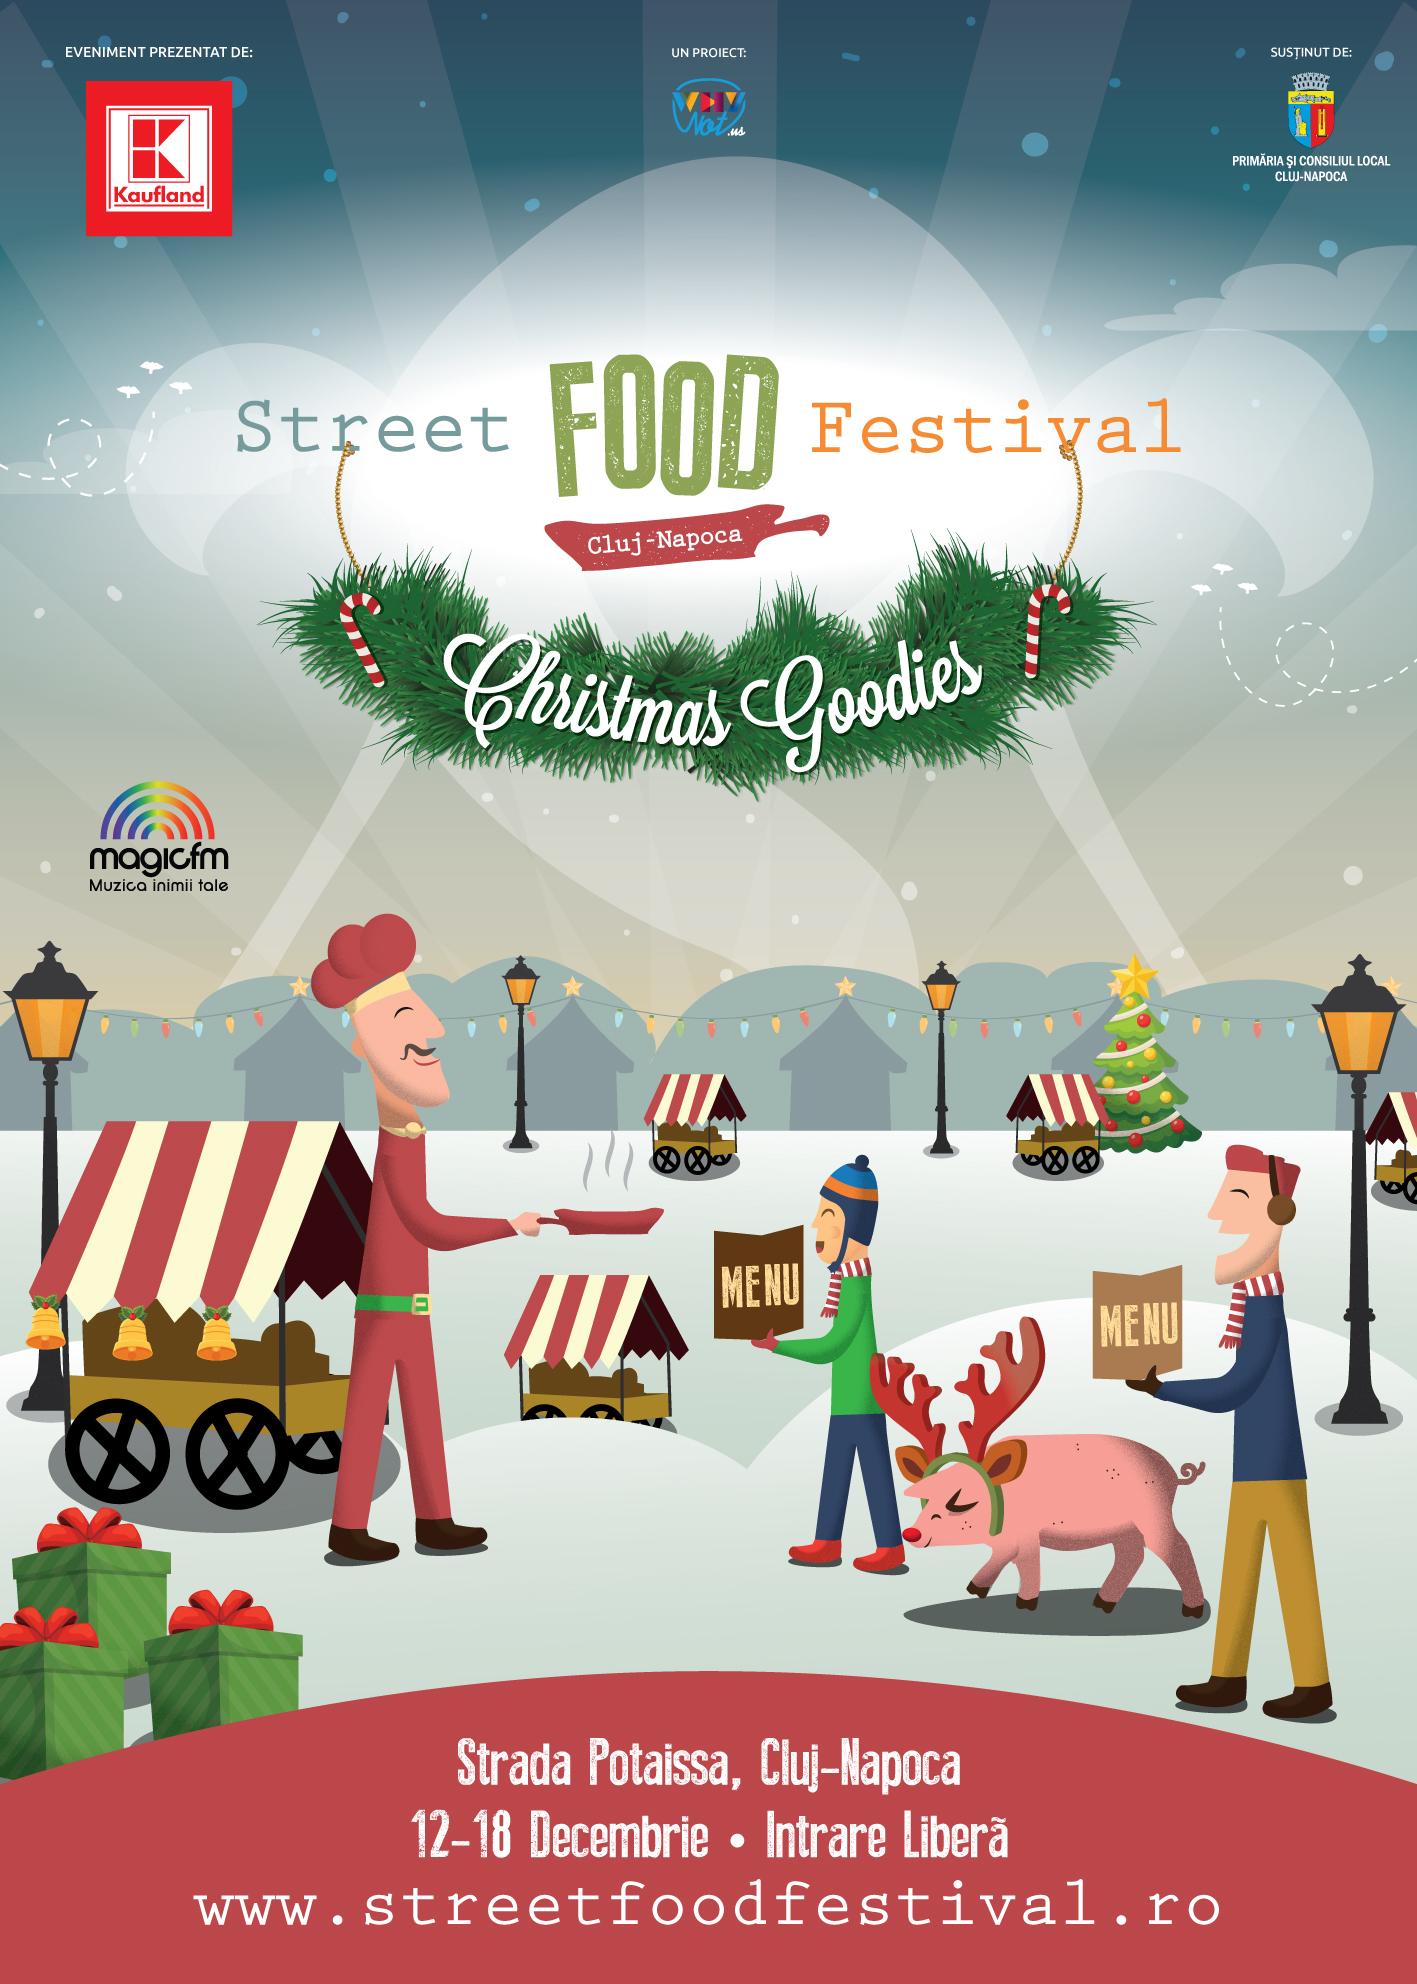 Street Food Festival Christmas Goodies | 12-18 decembrie 2016, Cluj